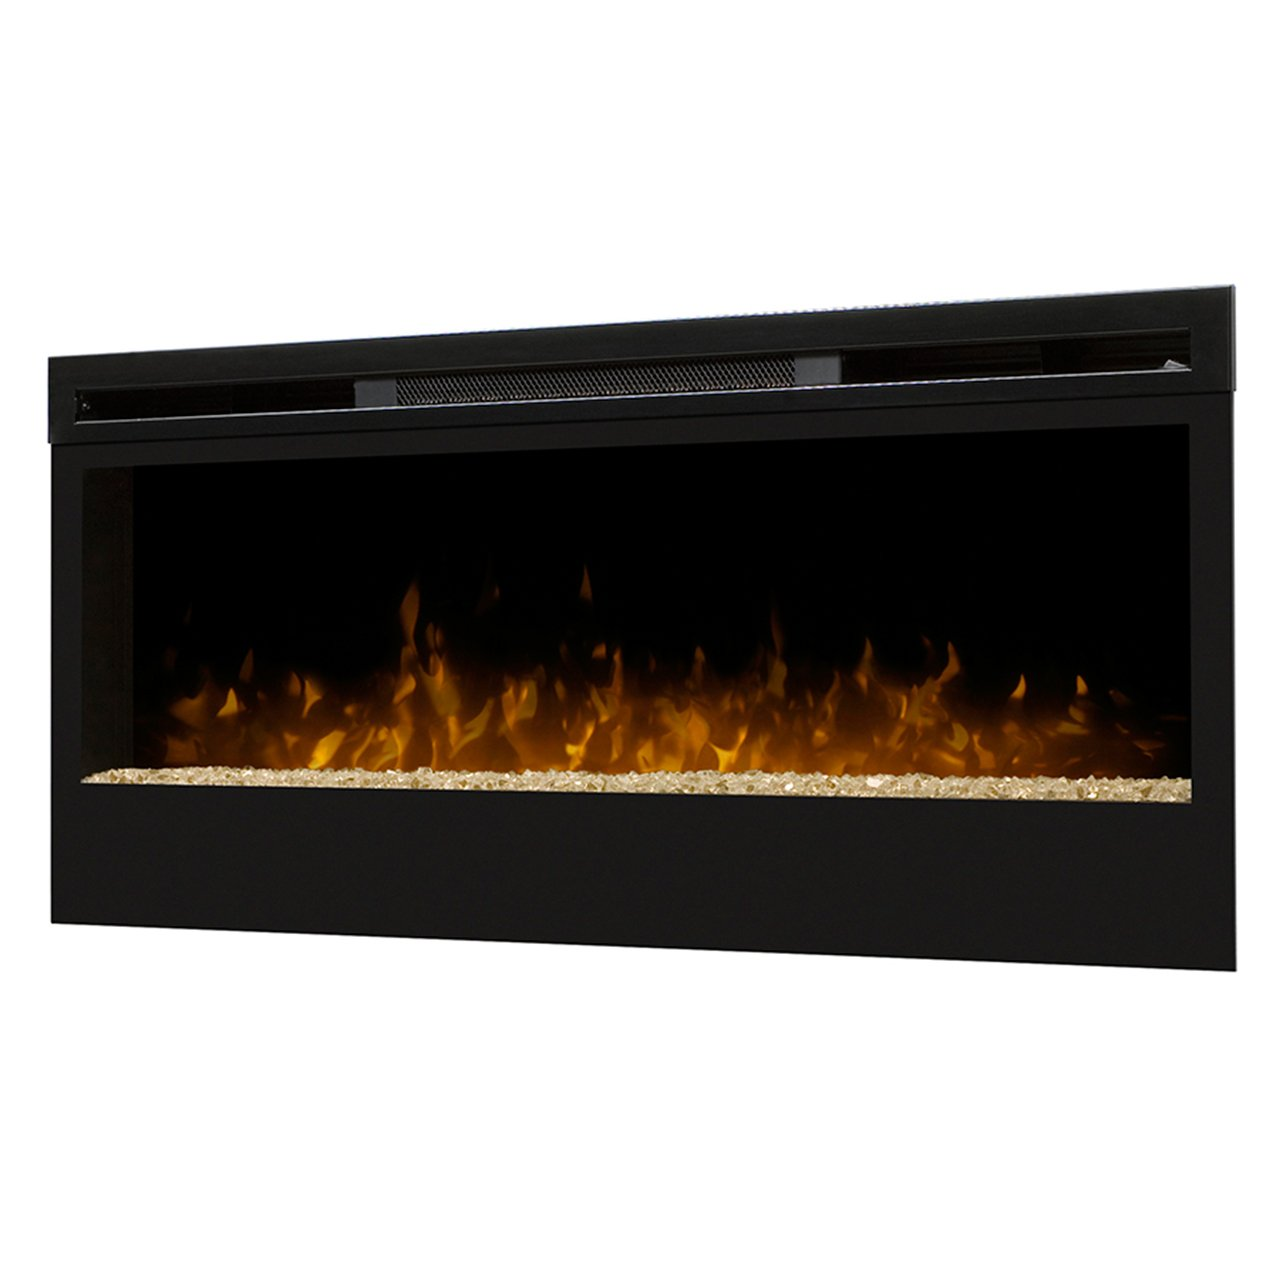 Dimplex BLF50 50-Inch Synergy Linear Wall Mount Electric Fireplace Cozy, Realistic Flame Effect - Top Of The Line